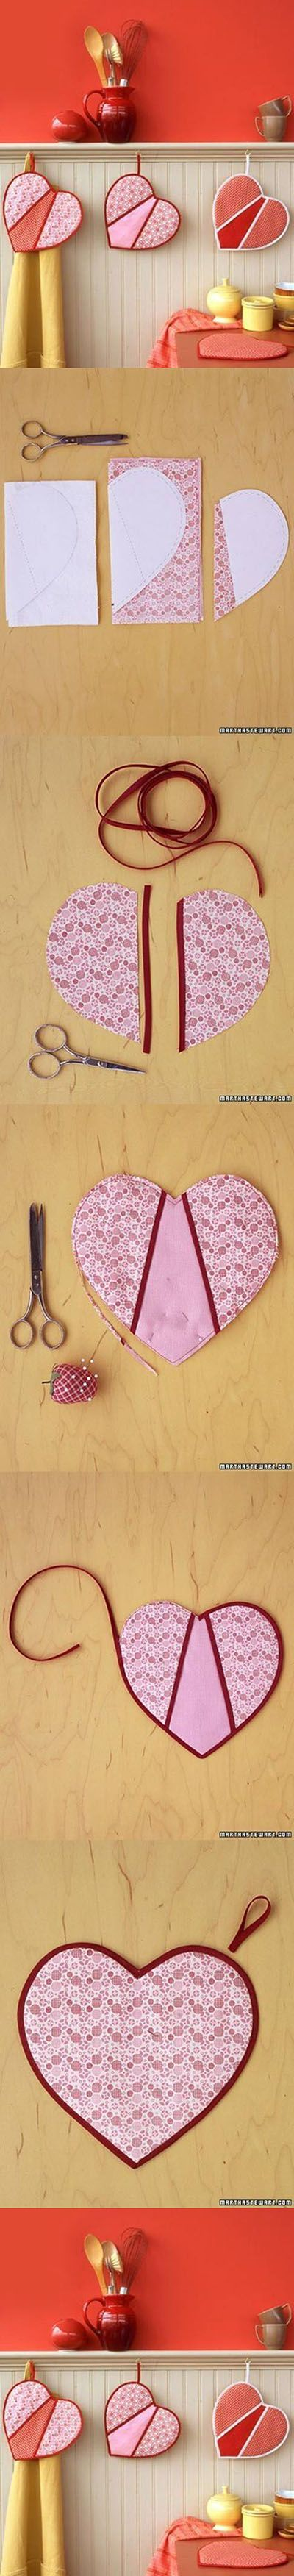 http://www.cadecga.com/category/Oven-Mitts/ So Lovely Heart Craft | DIY & Crafts Tutorials